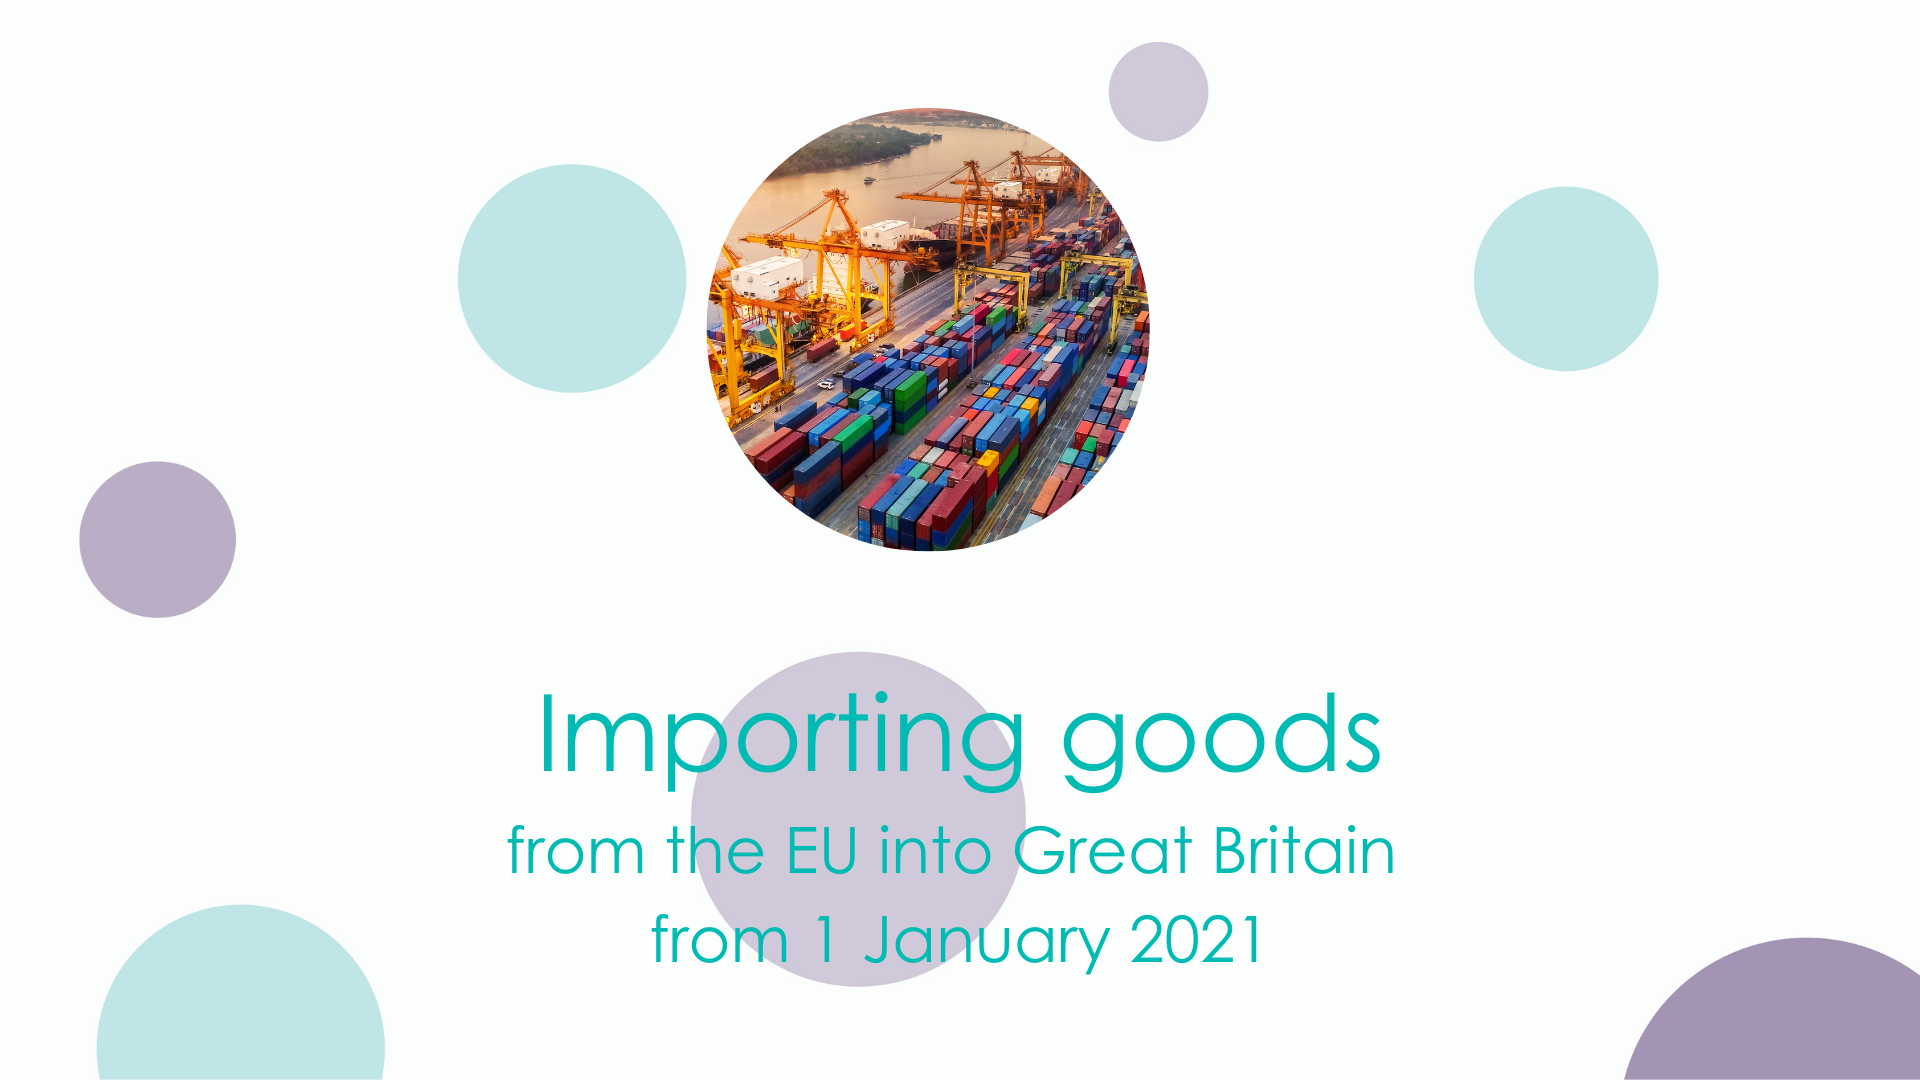 Importing goods from the EU to Great Britain from 1 January 2021